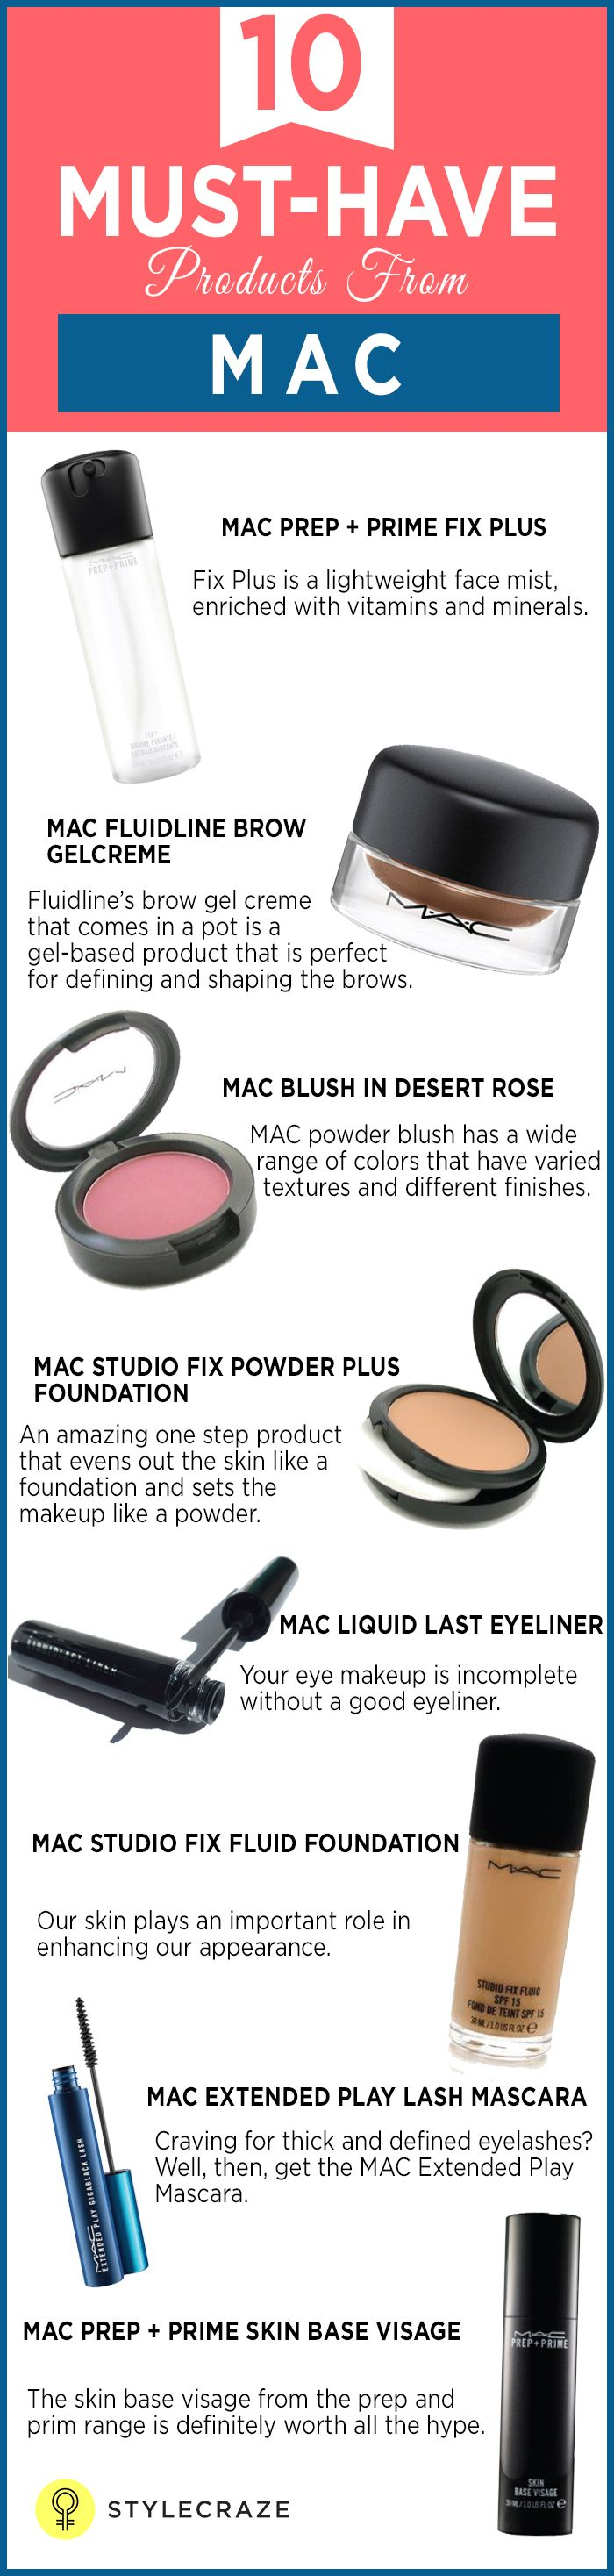 One of the leading cosmetic brands worldwide, the acronym MAC stands for Makeup Artist Cosmetics. MAC offers a wide range of products including eyeshadow, eyeliner, mascara, lip gloss, lipstick, foundation, blusher, face powder, nail color, concealer, and a lot more. Here are 10 must-have MAC products.  #MakeupProducts